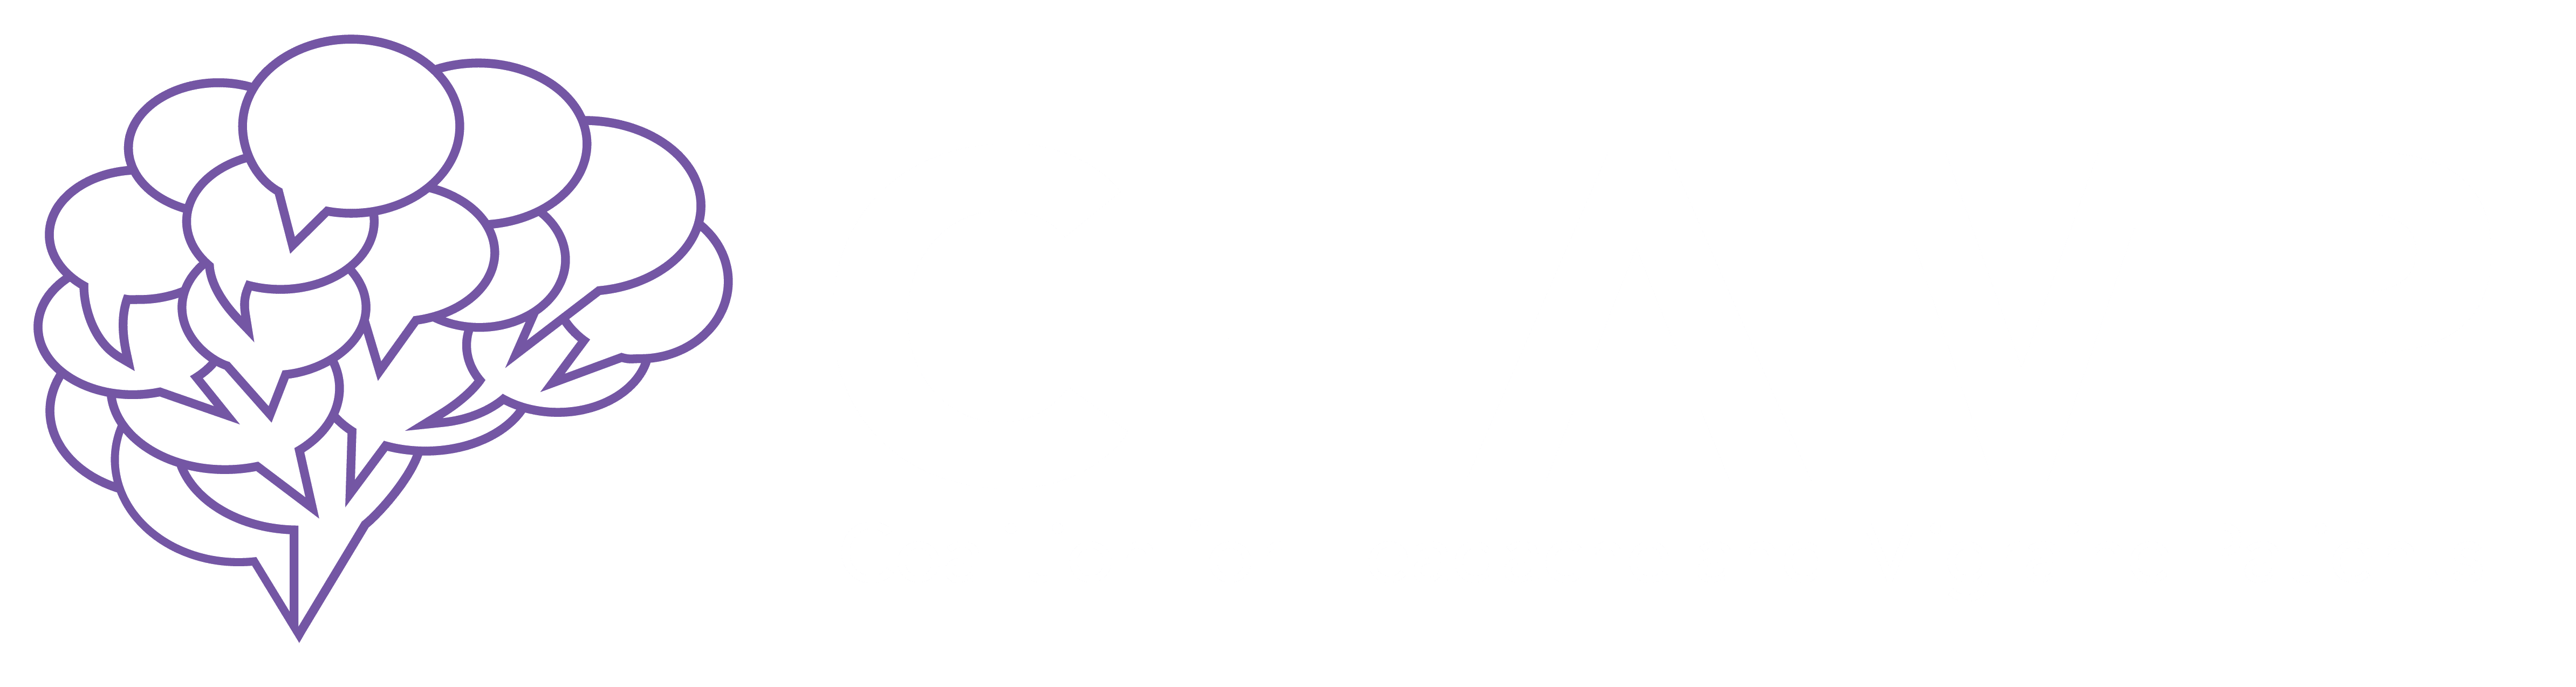 Coalition for Headache and Migraine Patients